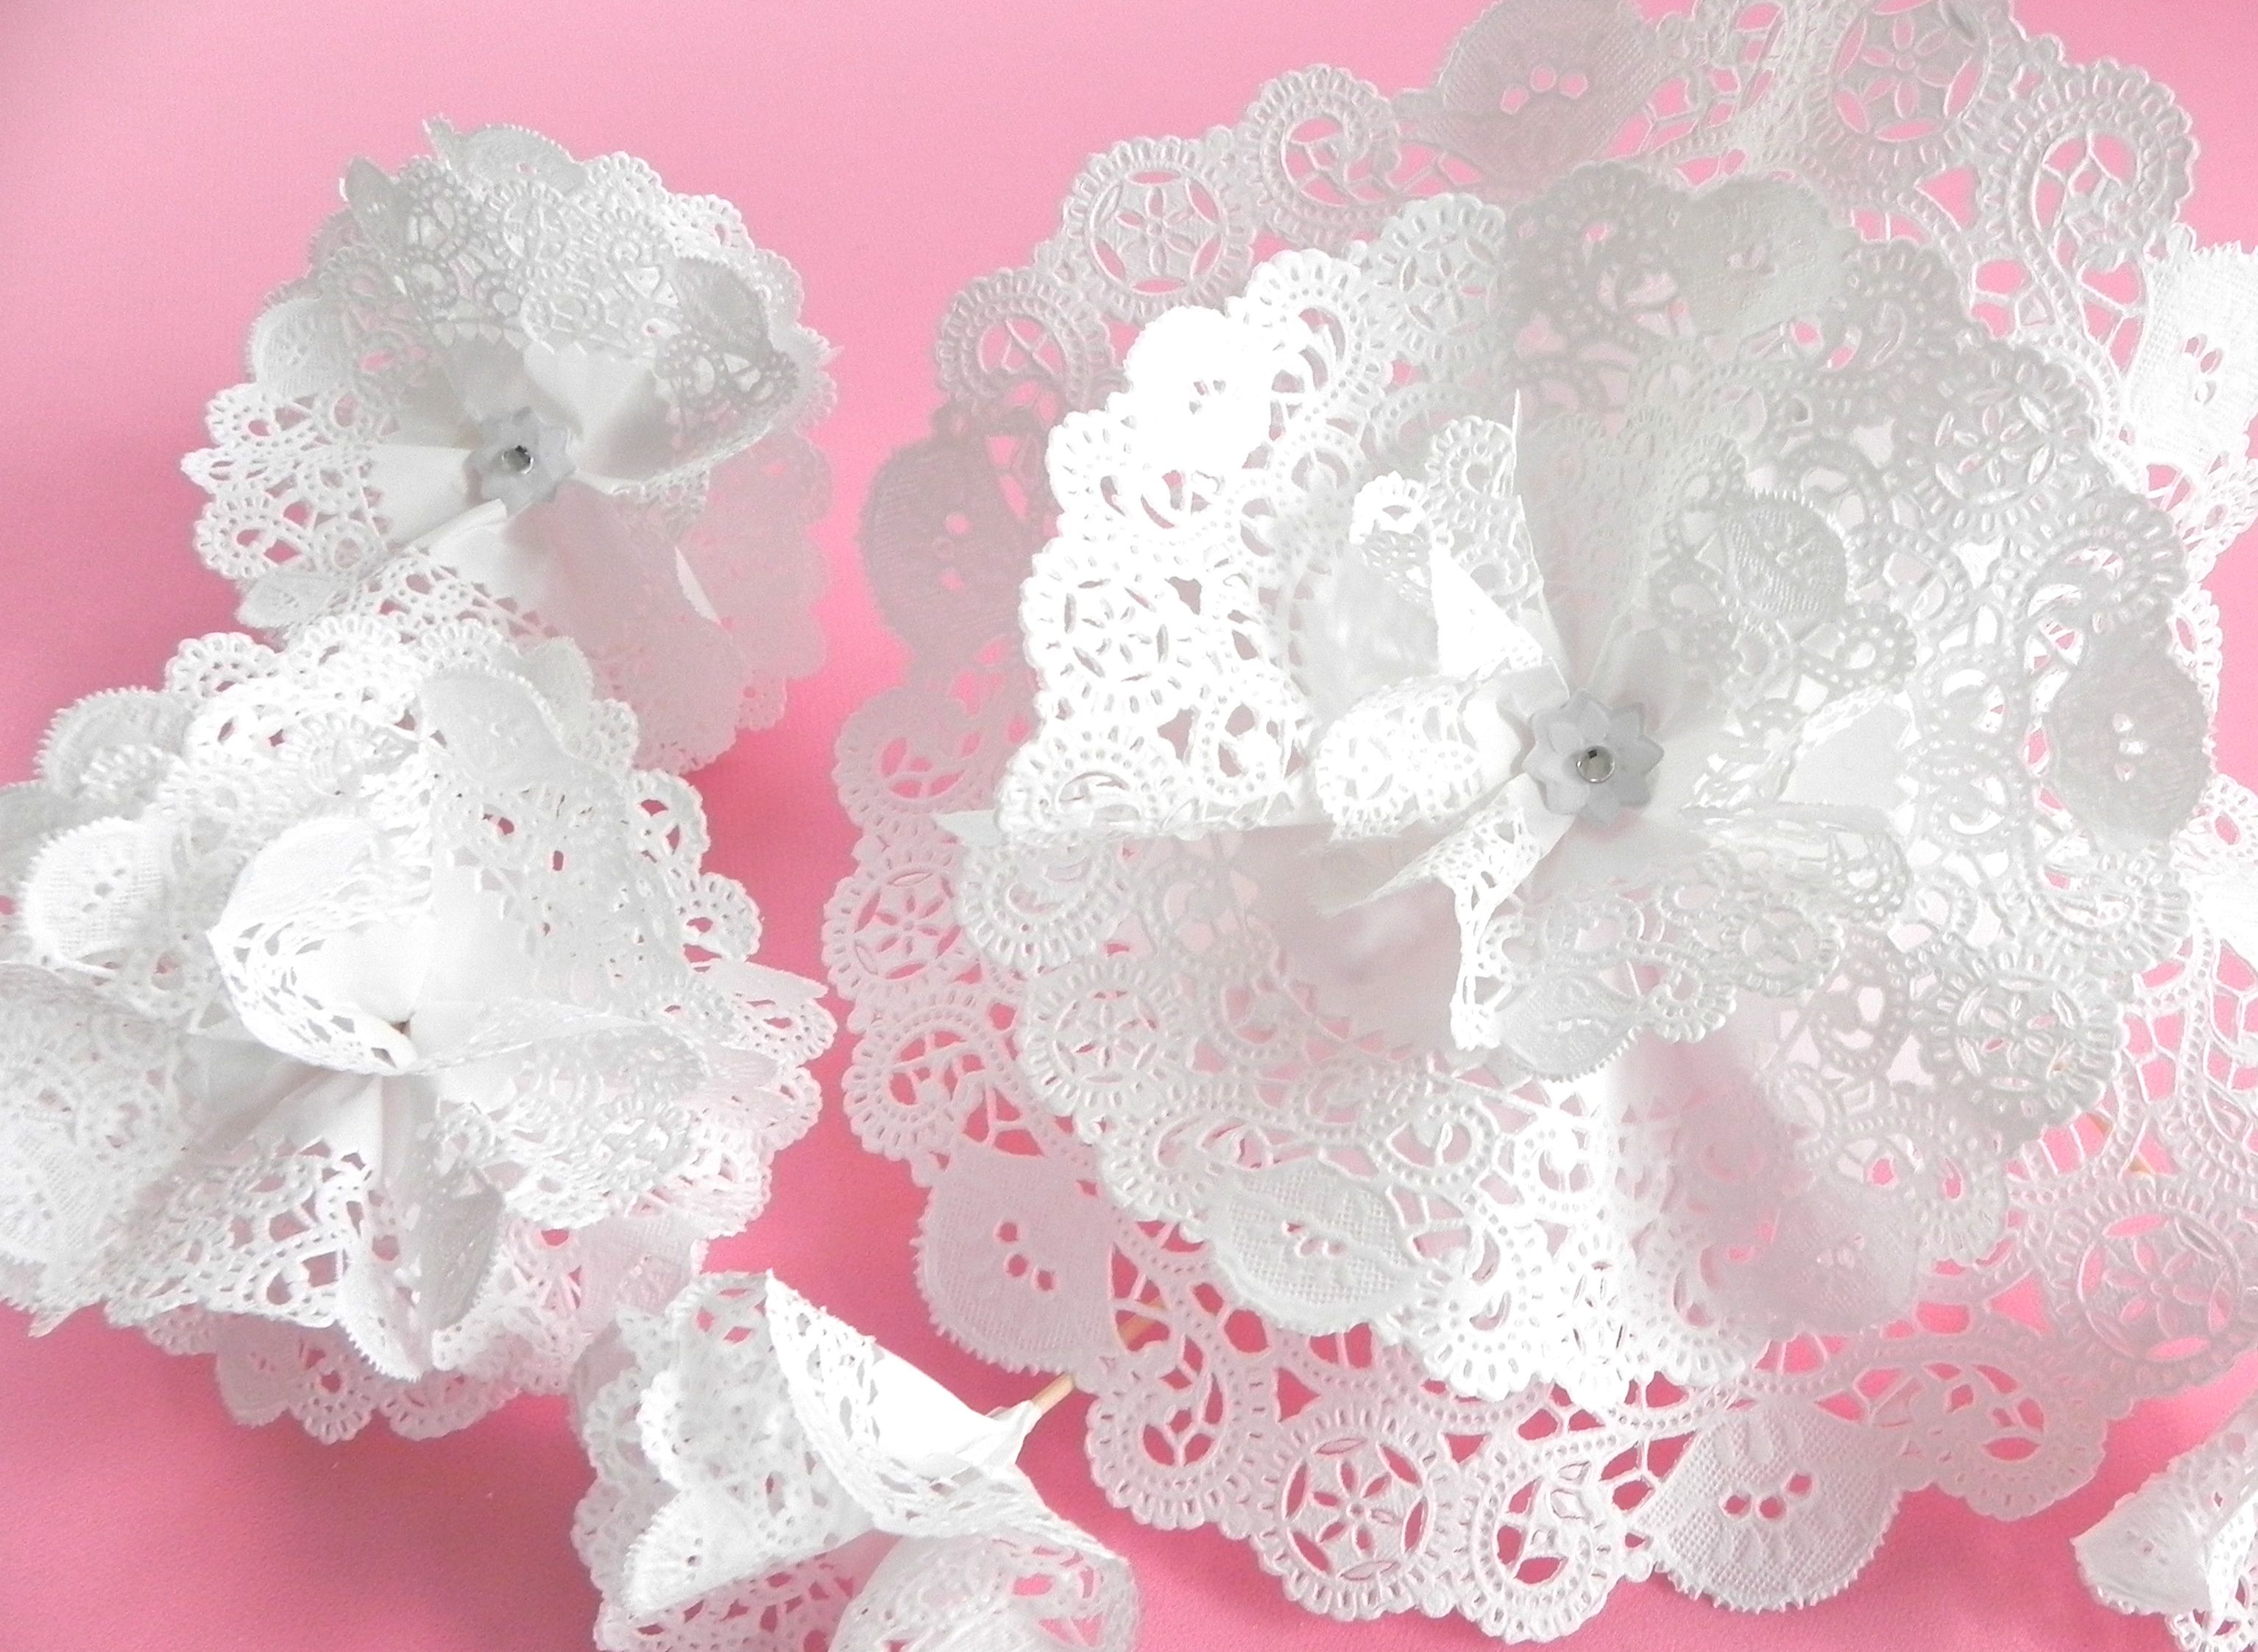 Dorable paper doily flowers composition best evening gown paper doily flowers images flower decoration ideas mightylinksfo